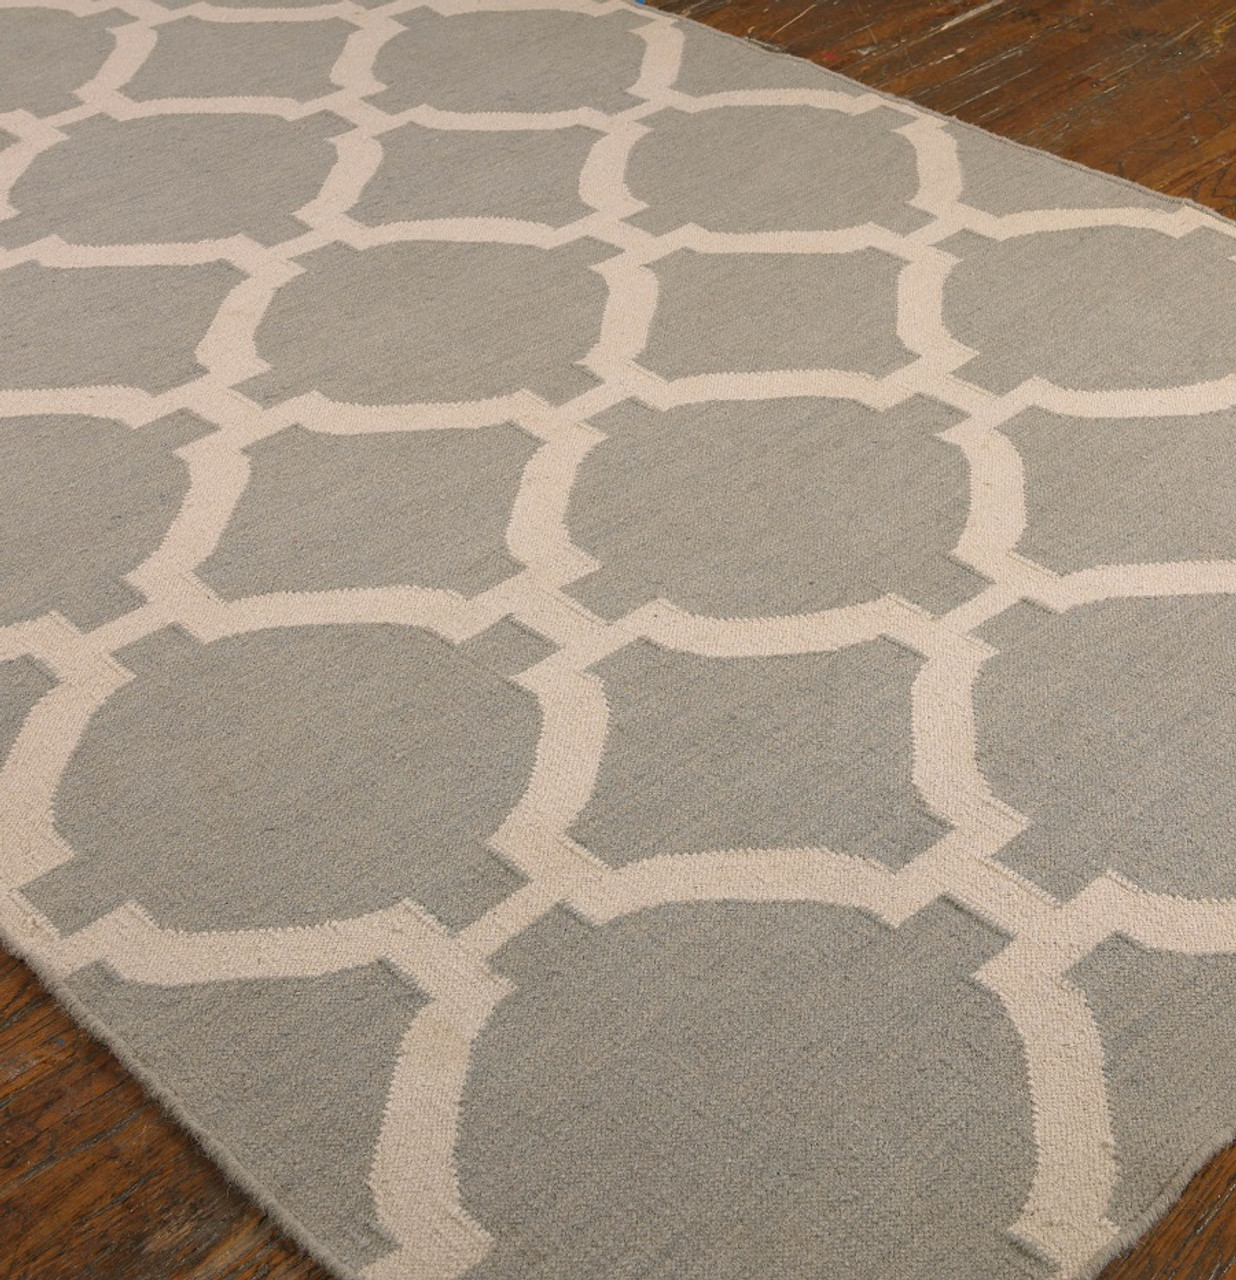 worn woodwaves products gray persian style grey rug faded